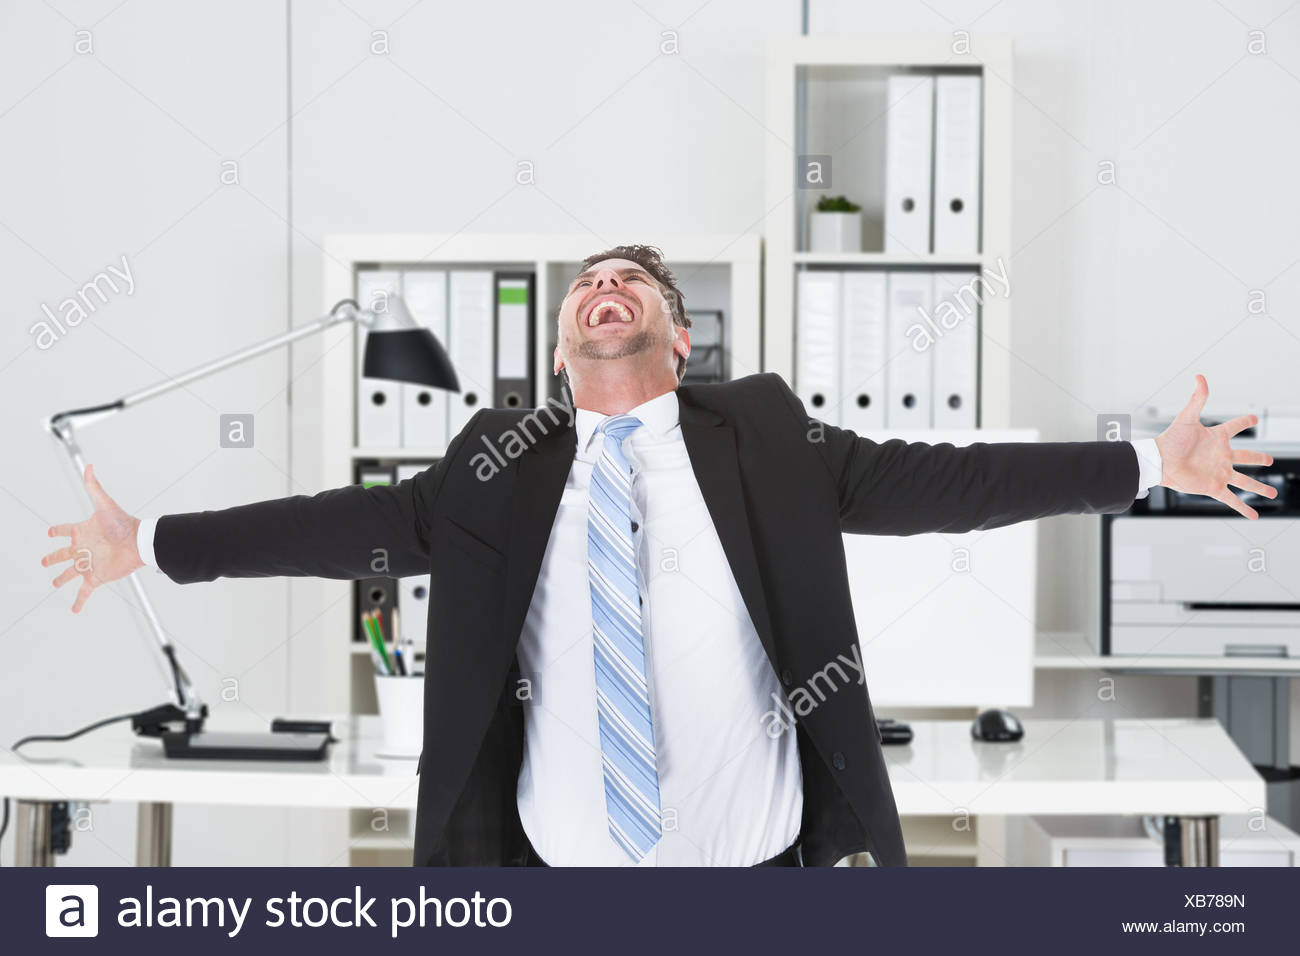 Businessman Laughing While Standing With Arms Outstretched - Stock Image